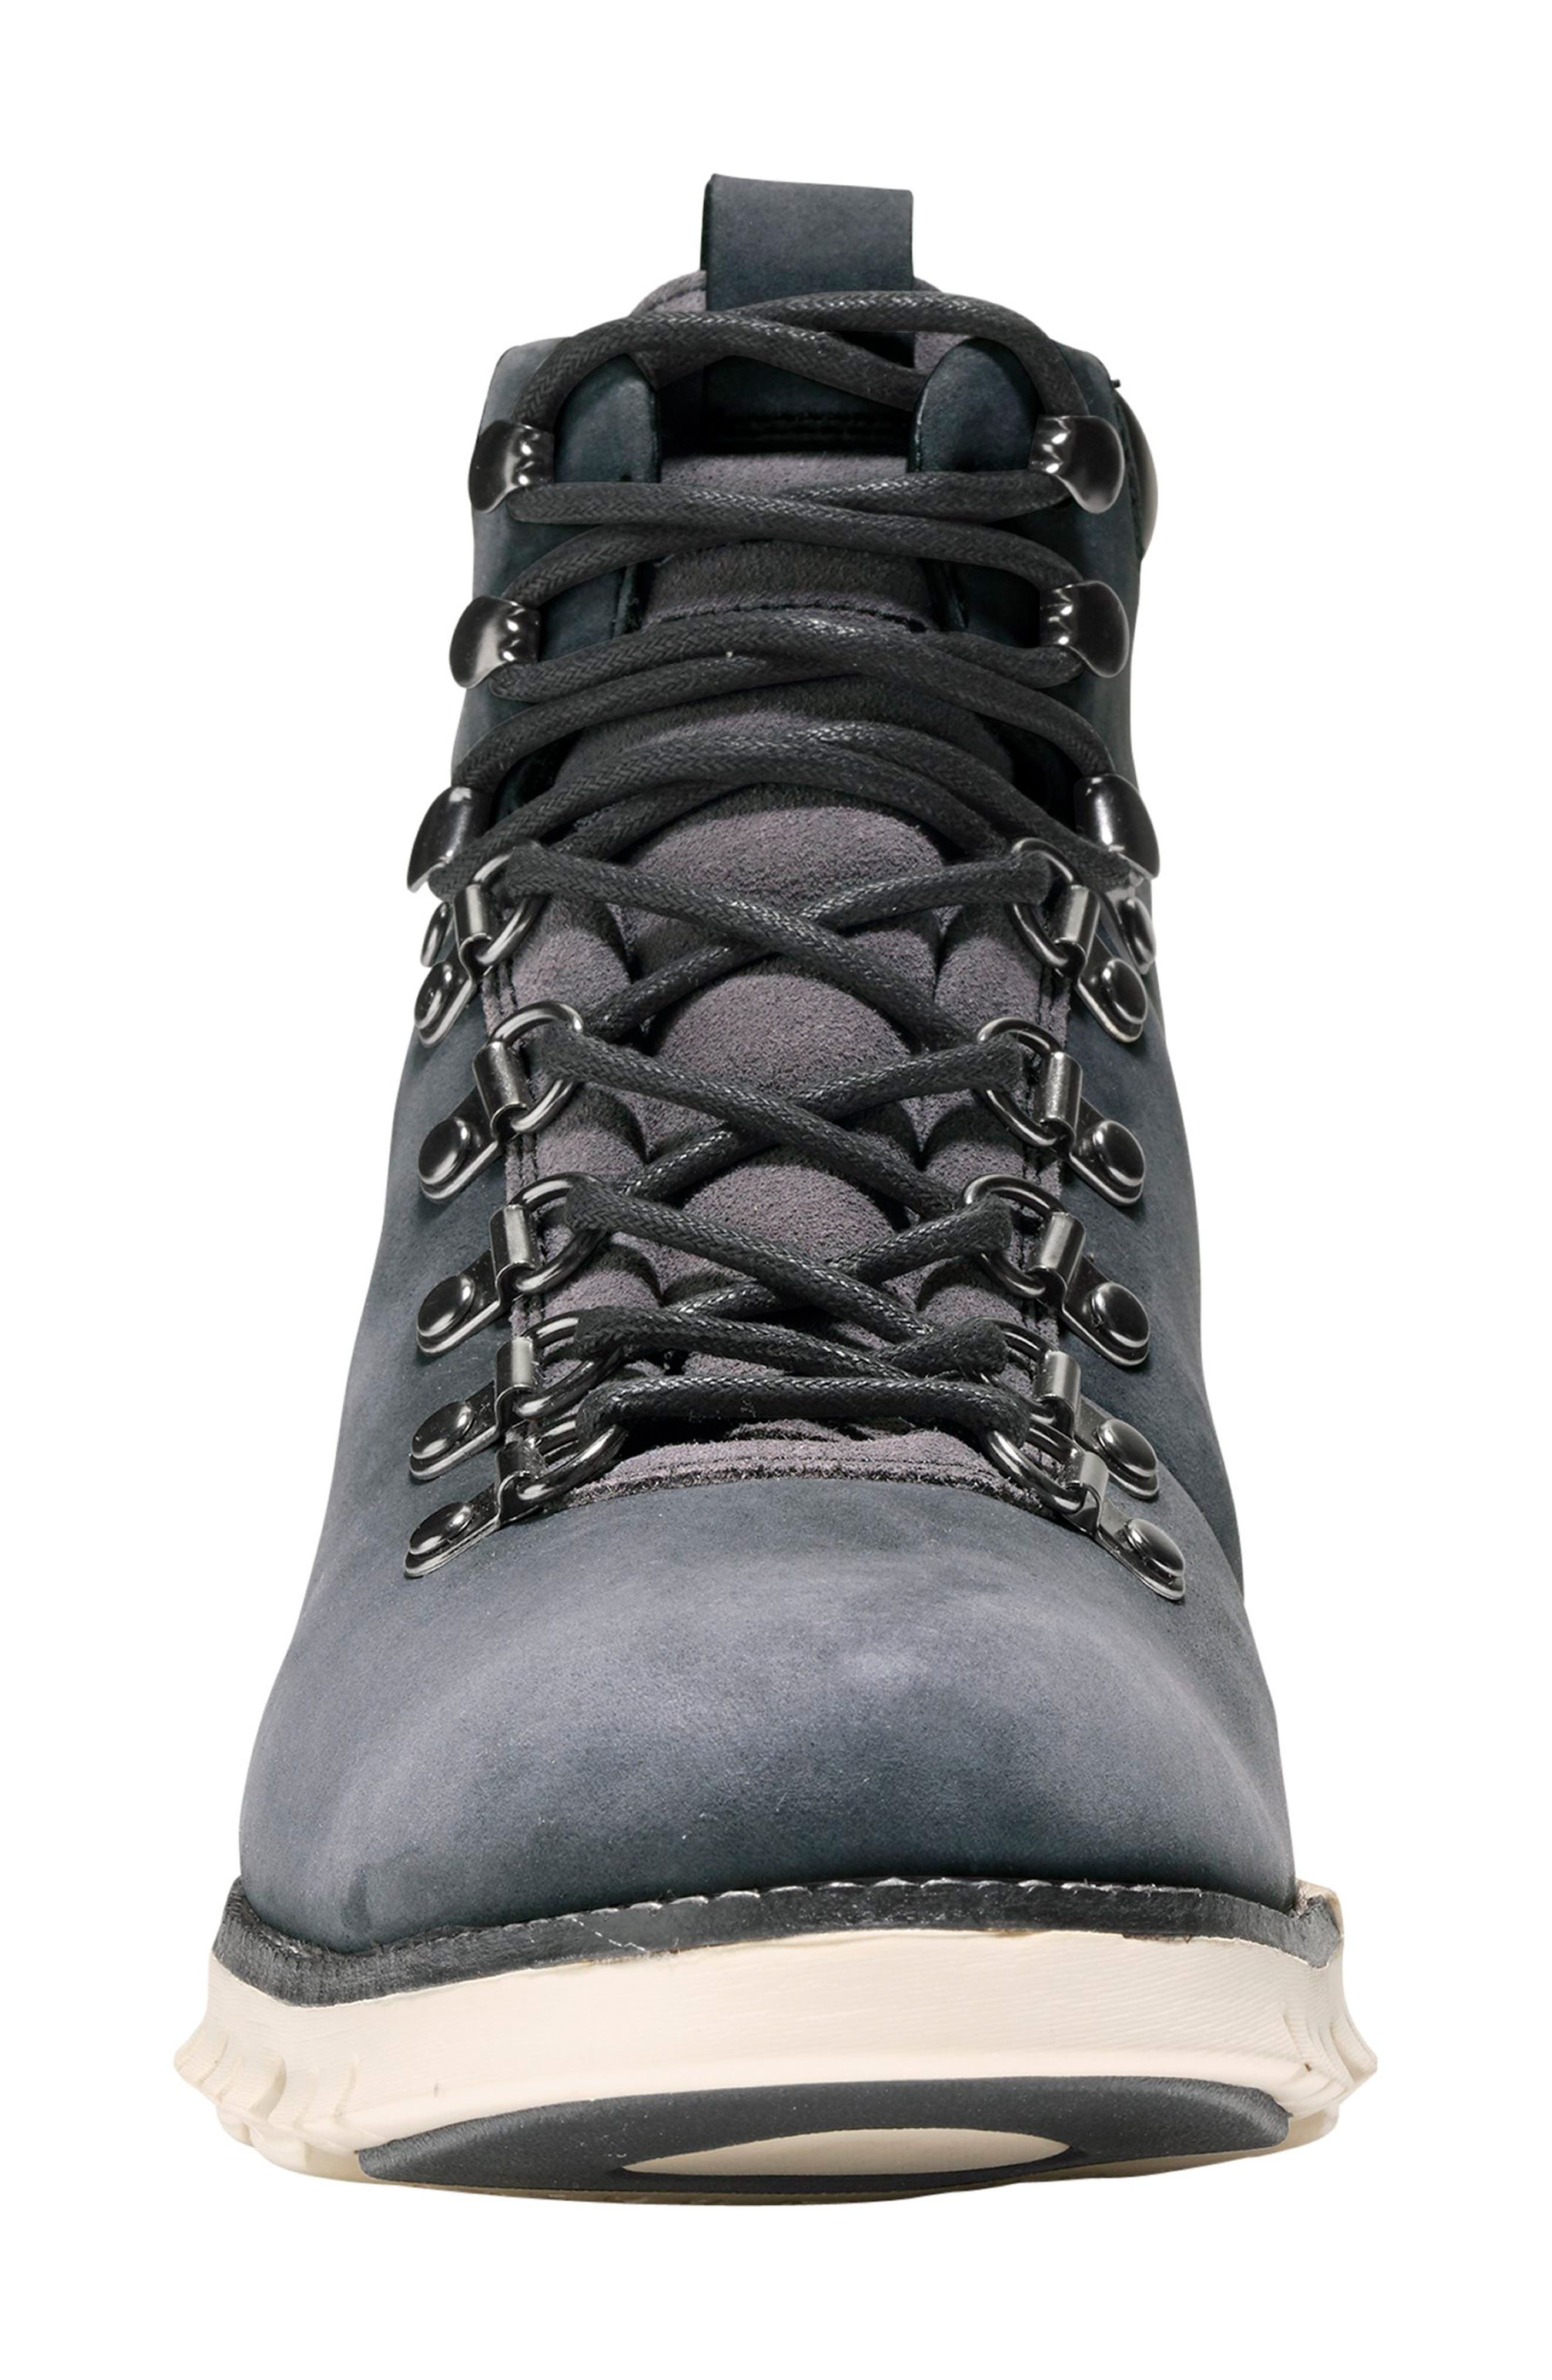 ZeroGrand Water Resistant Hiker Boot,                             Alternate thumbnail 4, color,                             GREY/ IVY LEATHER